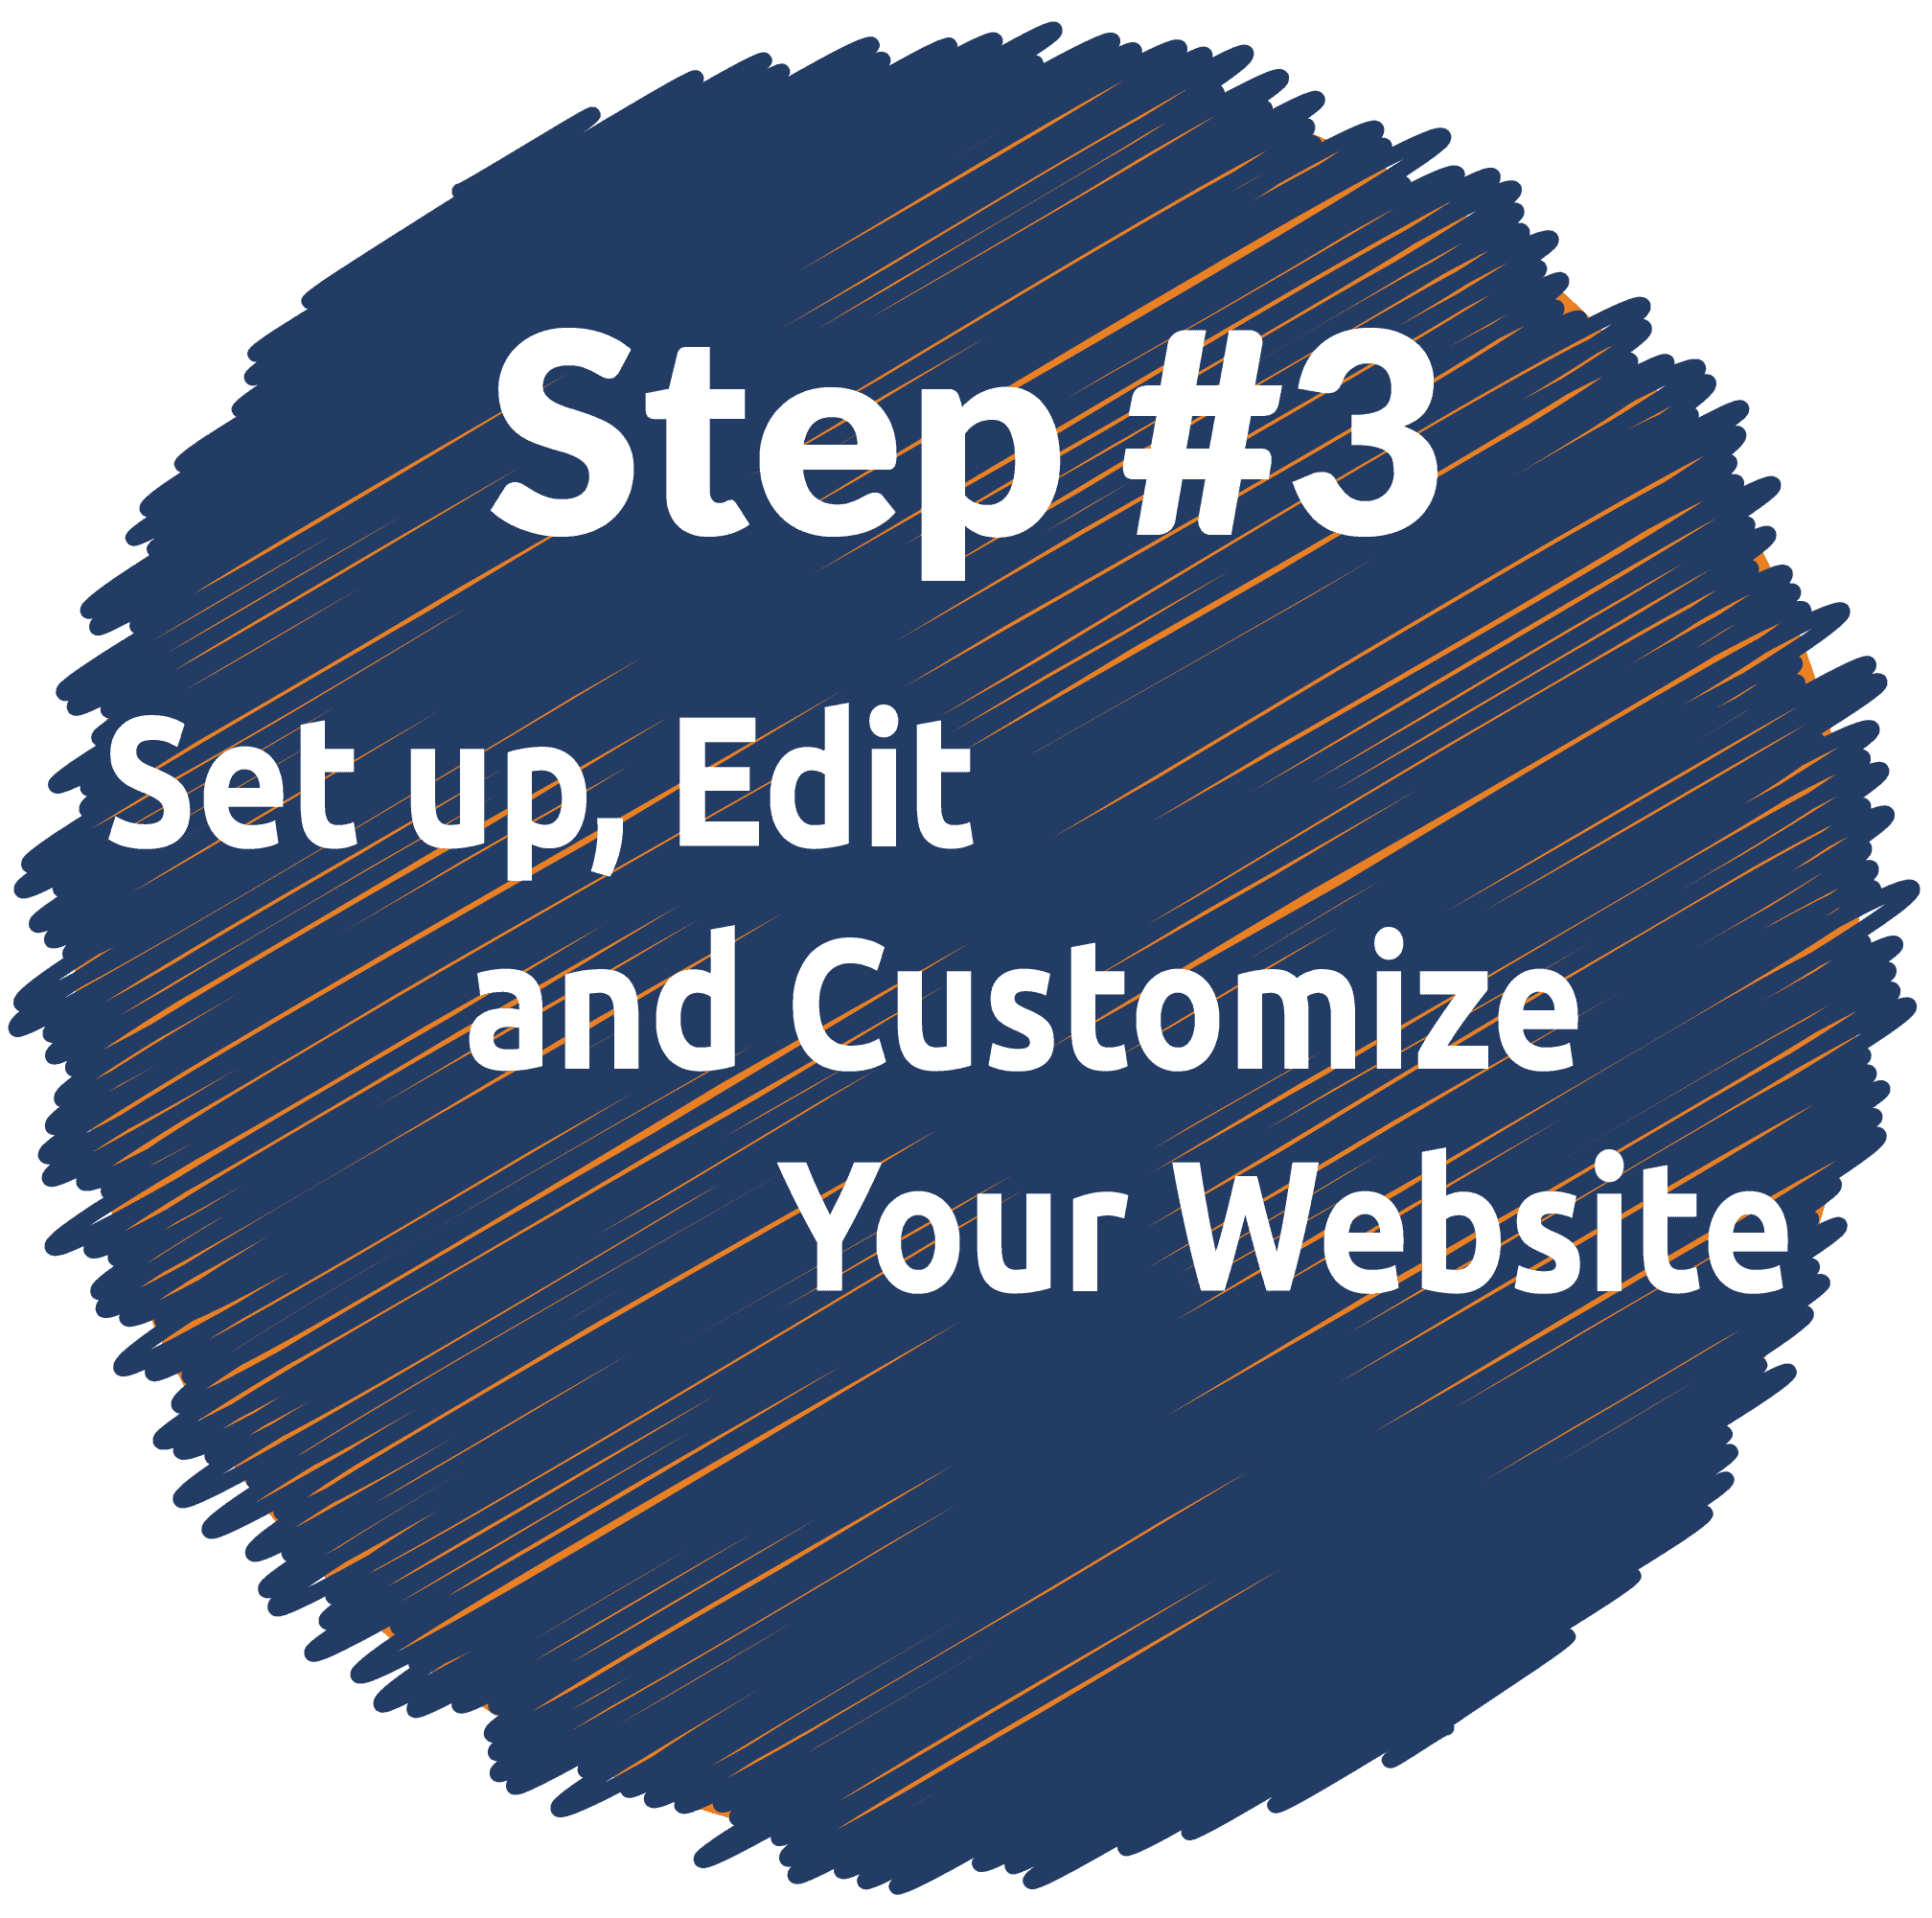 Step 3 of creating a website